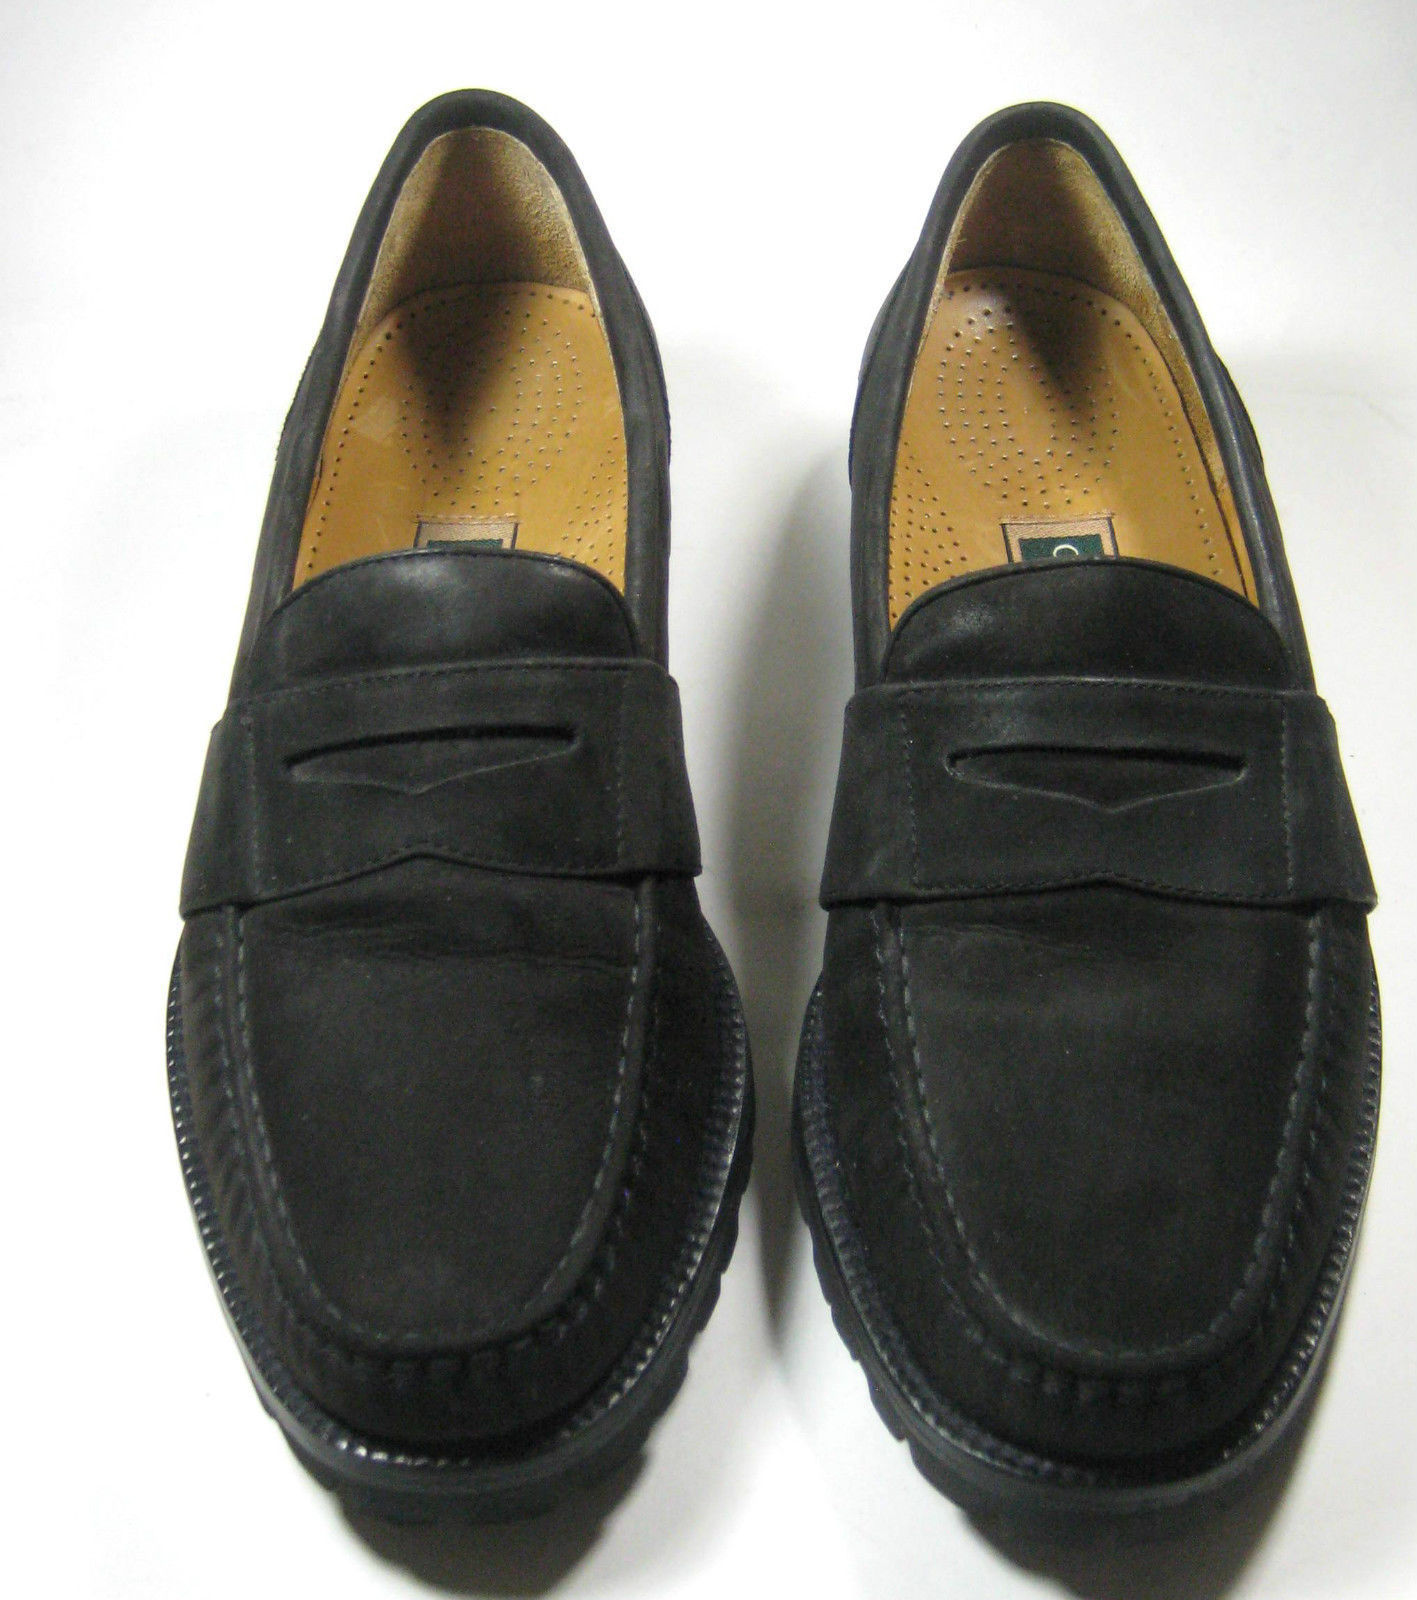 0a909b9a647  295 COLE HAAN 7.5M VIBRAM Sole Dark Rich Brown Suede Loafer Excellent